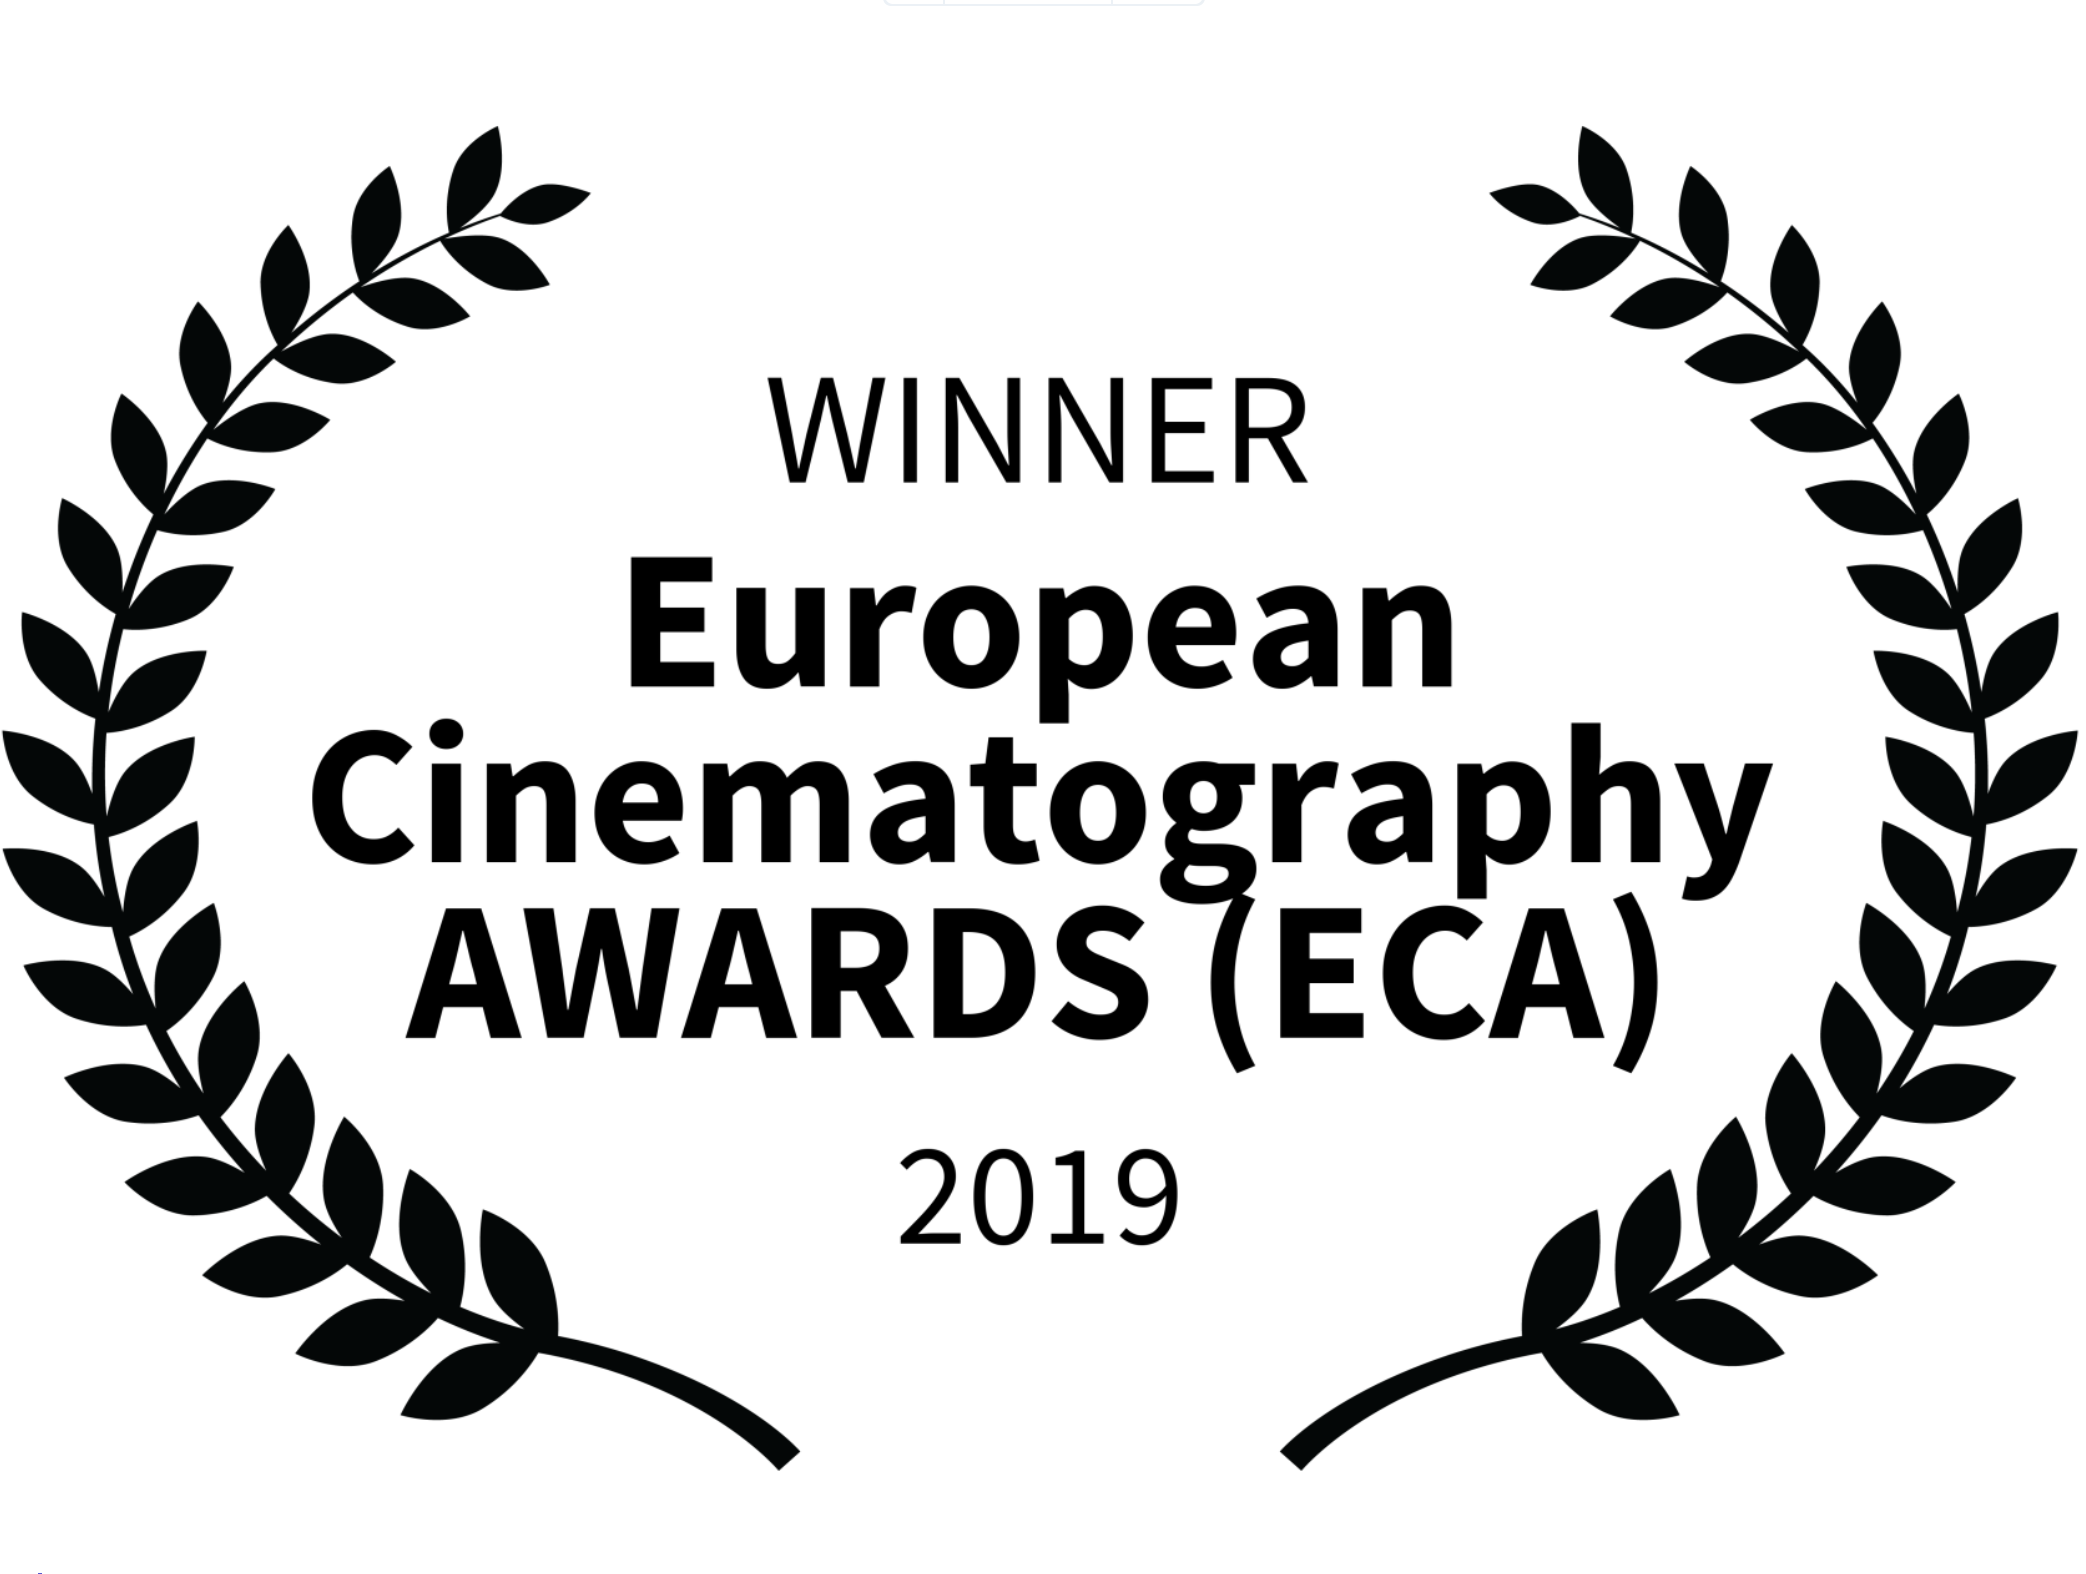 - 2018 WinnerEuropean Cinematography Awards|| Today is a Good Day